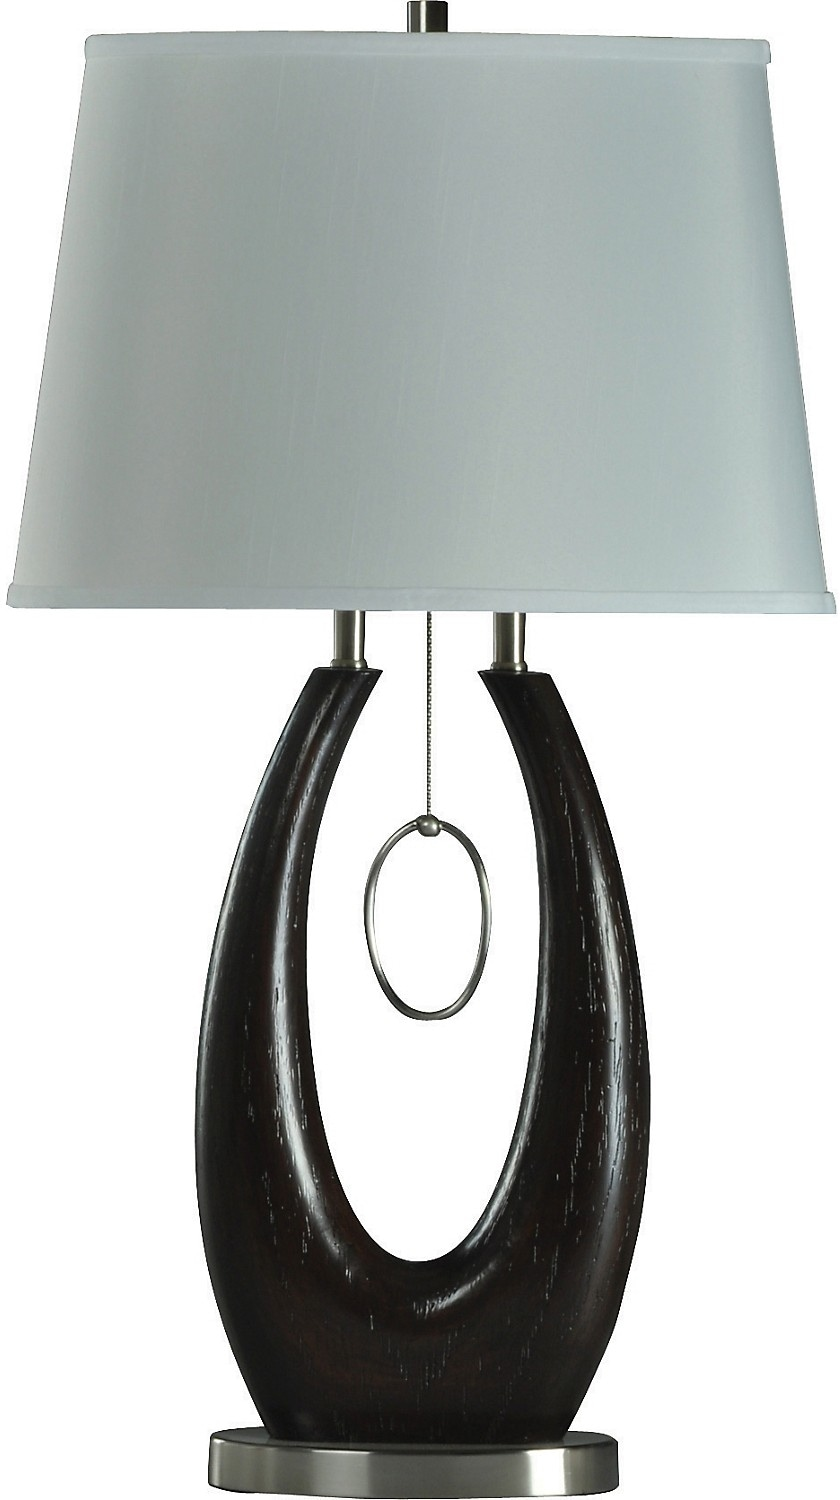 Oval Wood Table Lamp